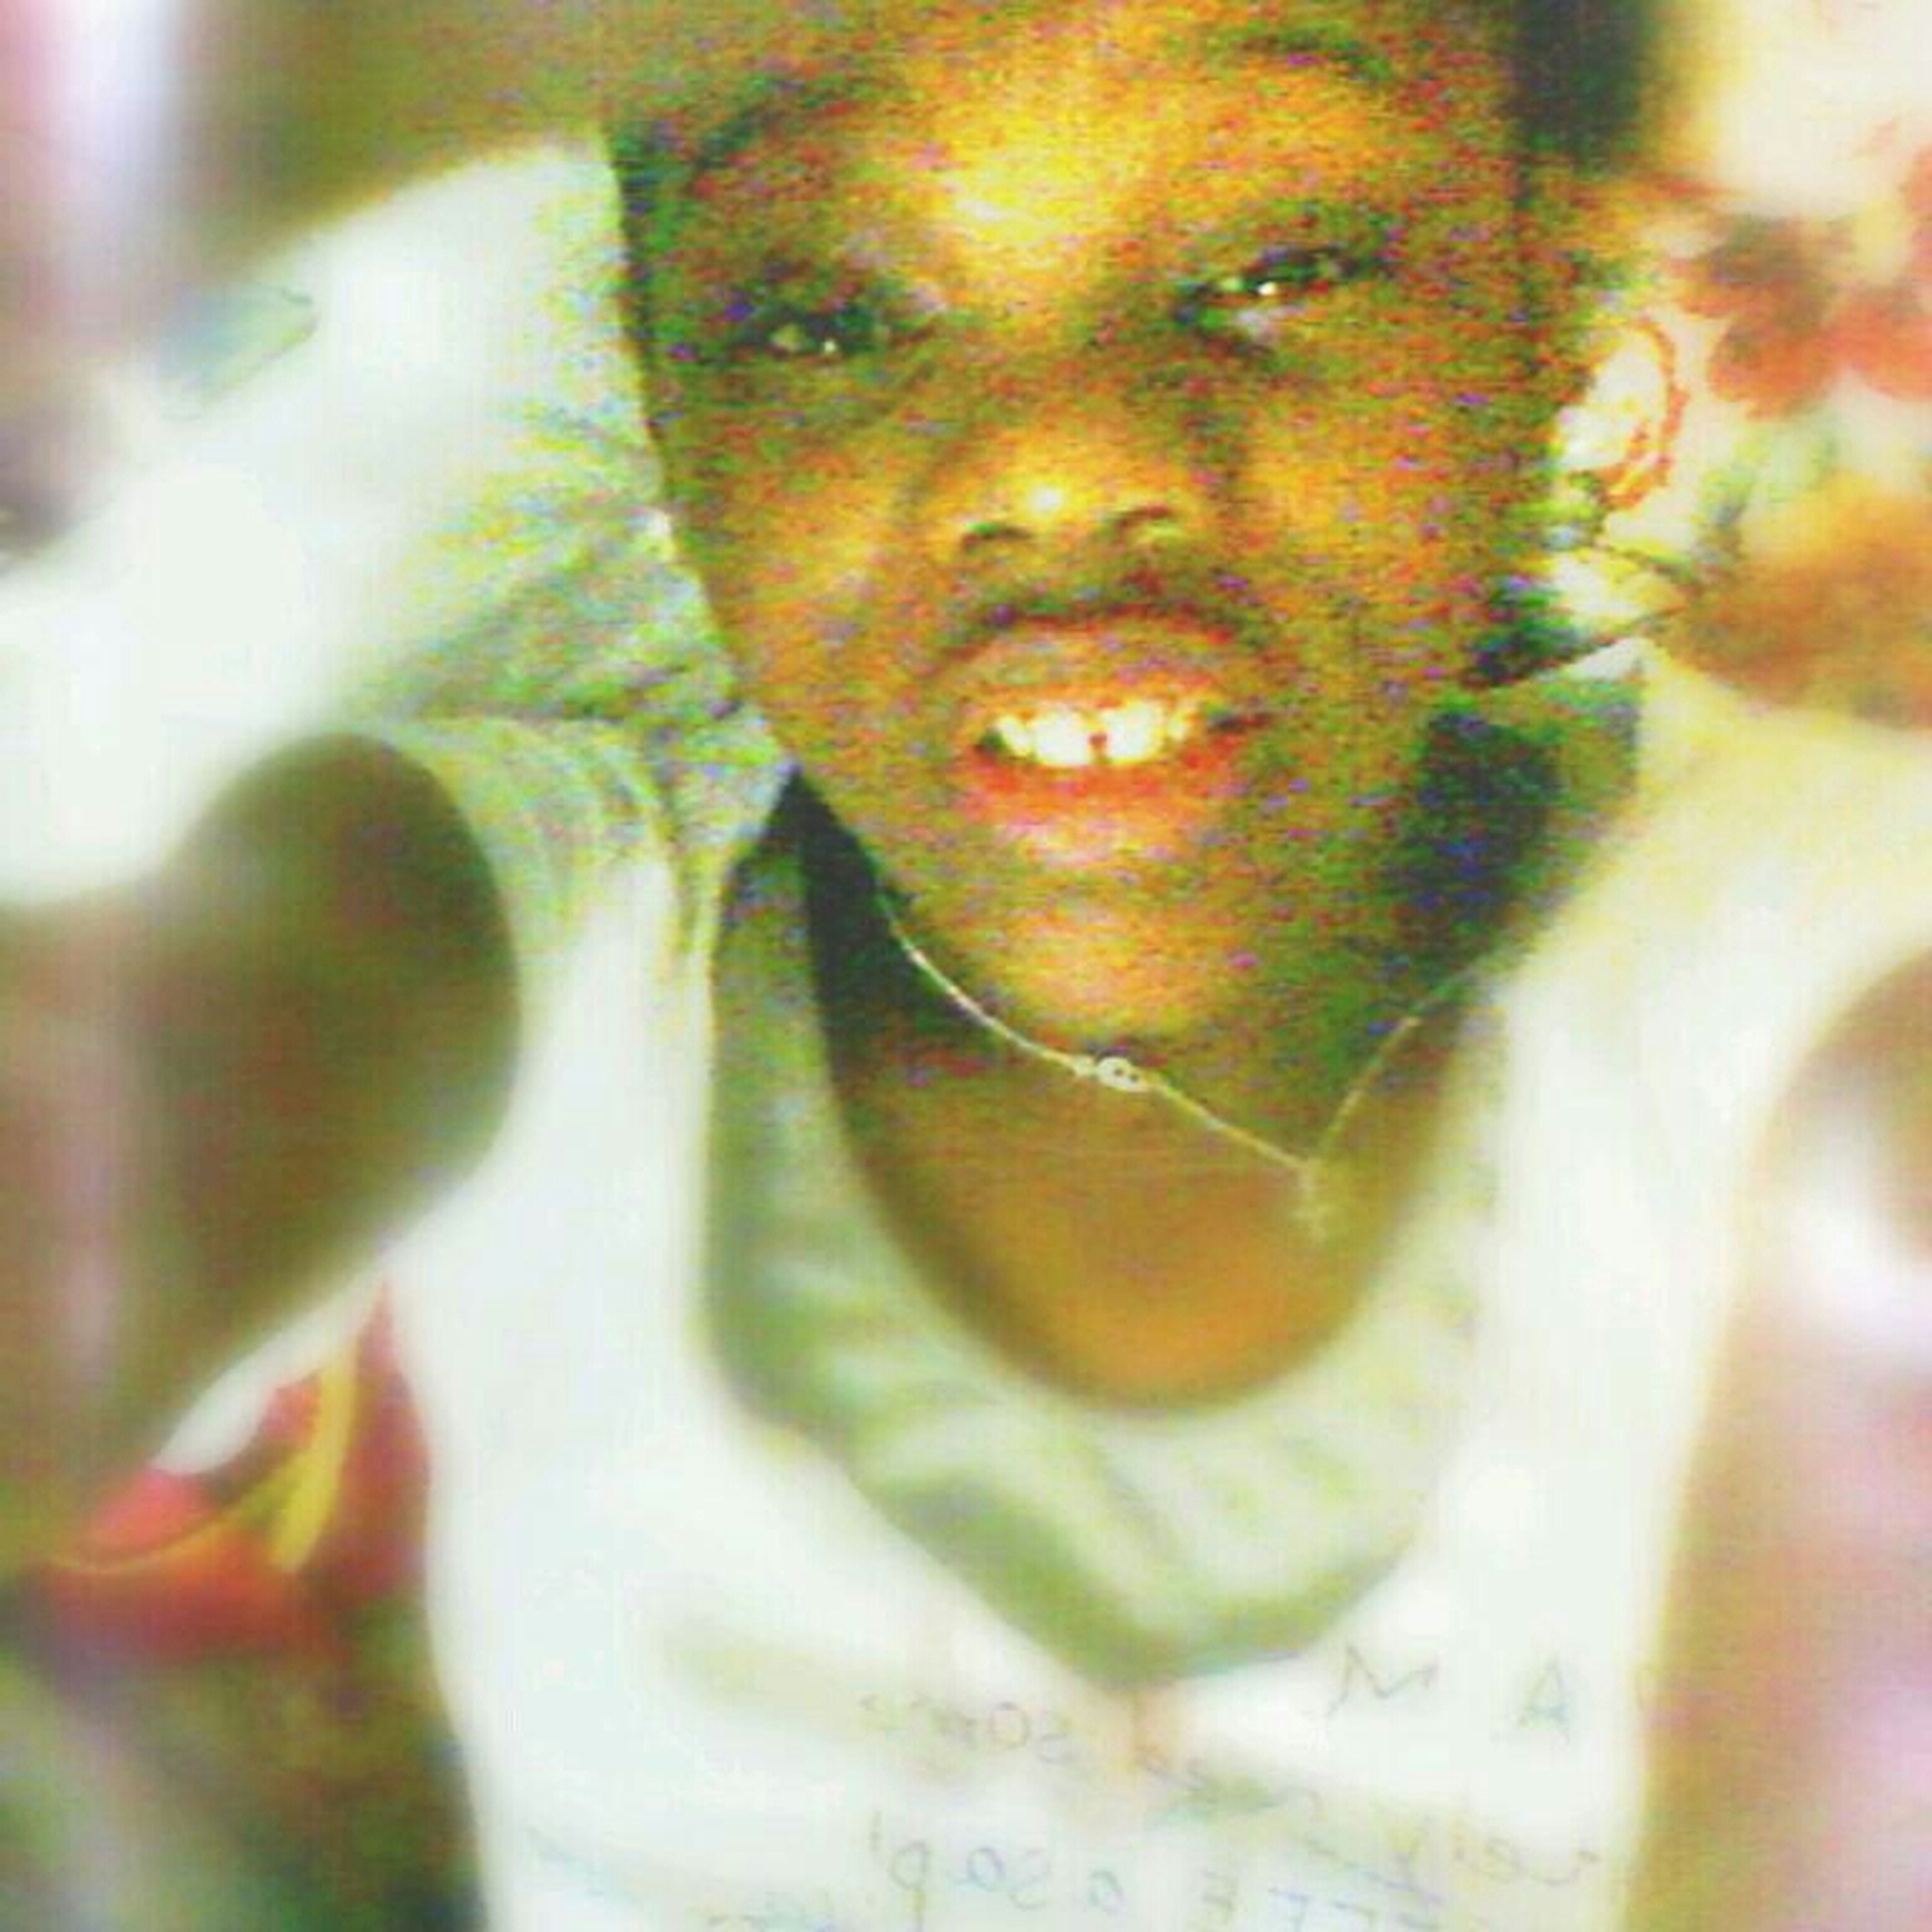 Mee After Church